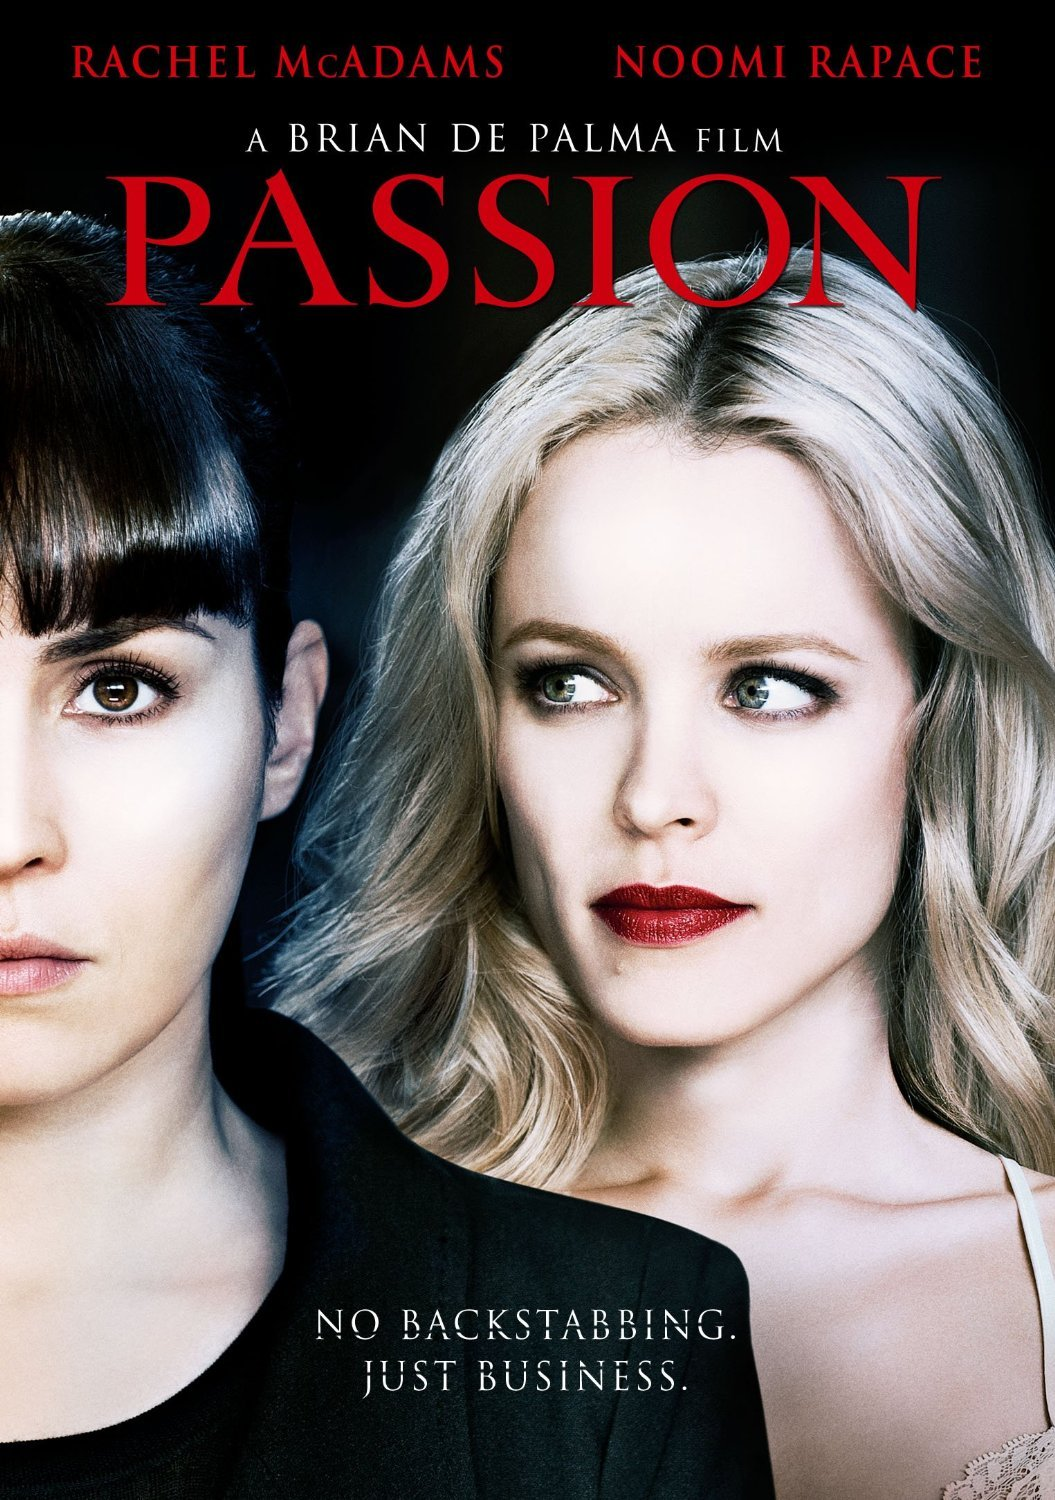 Passion (2012) BRAND NEW.  SHIP FAST WITH TRACKING NUMBER